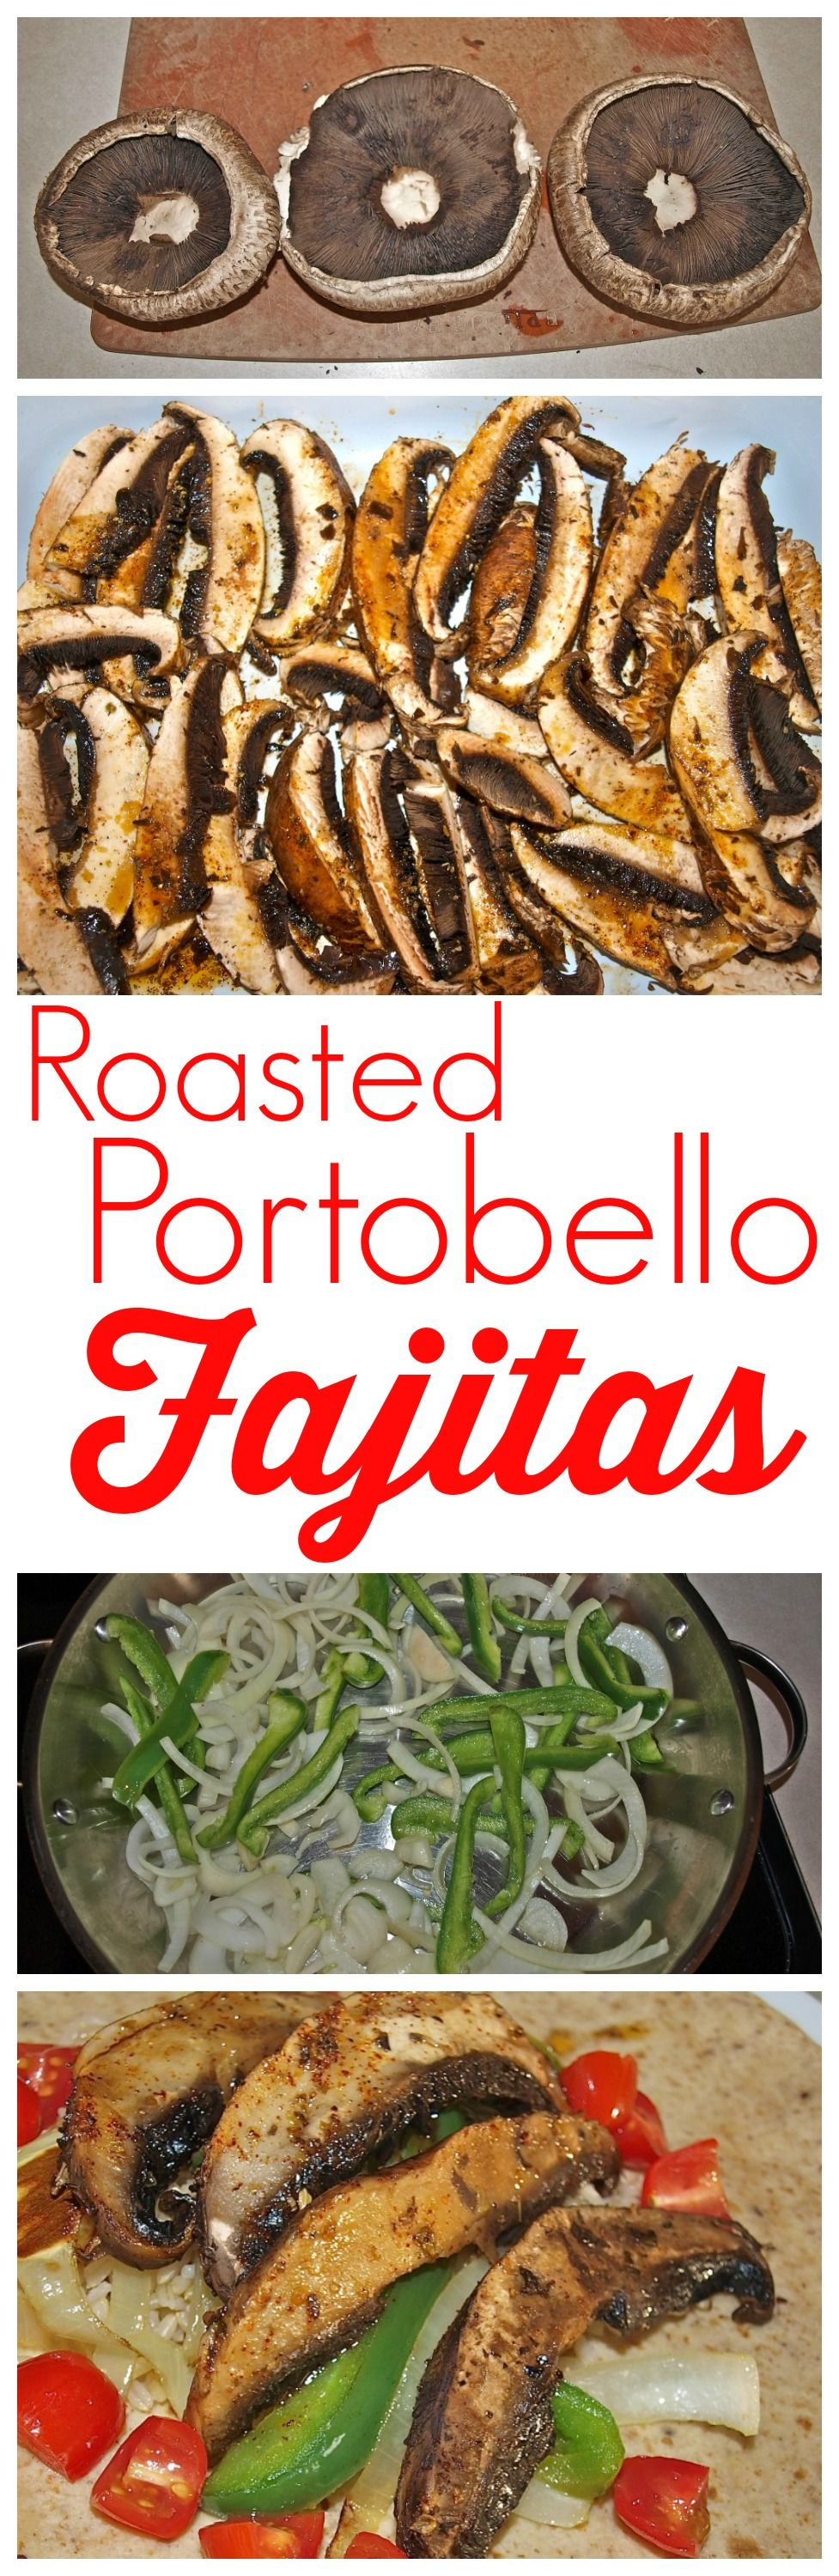 Roasted Portobello Fajitas